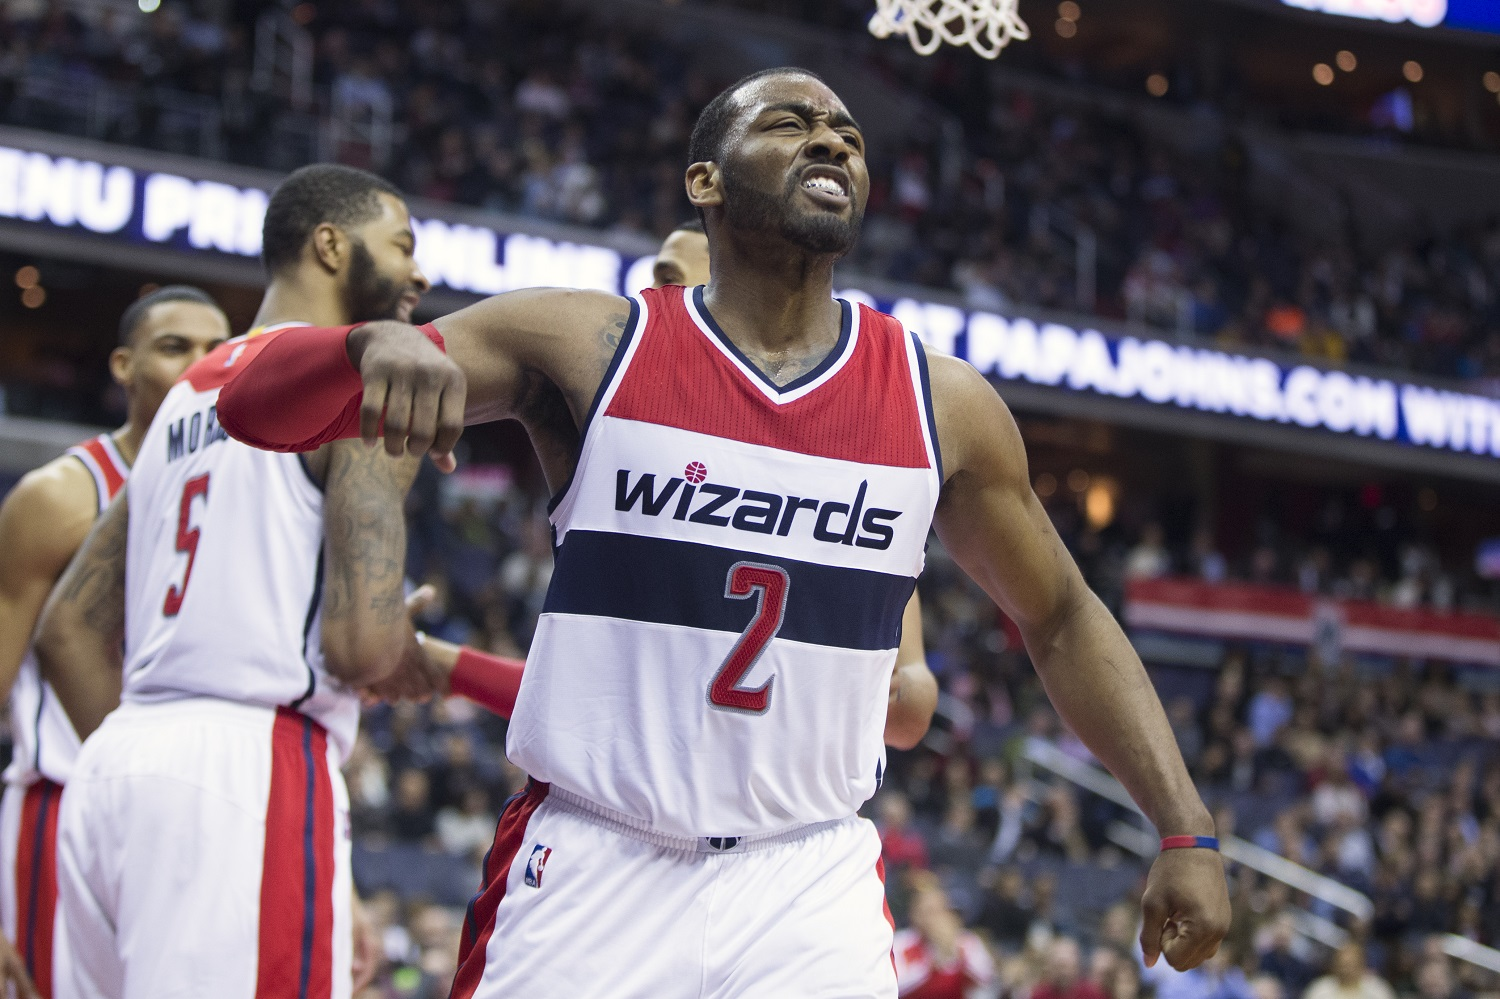 Washington Wizards guard John Wall celebrates a basket against the Philadelphia 76ers during the second half of an NBA basketball game, on Monday, Feb. 29, 2016, in Washington. The Wizards defeated the 76ers 116-108. (AP Photo/Evan Vucci)